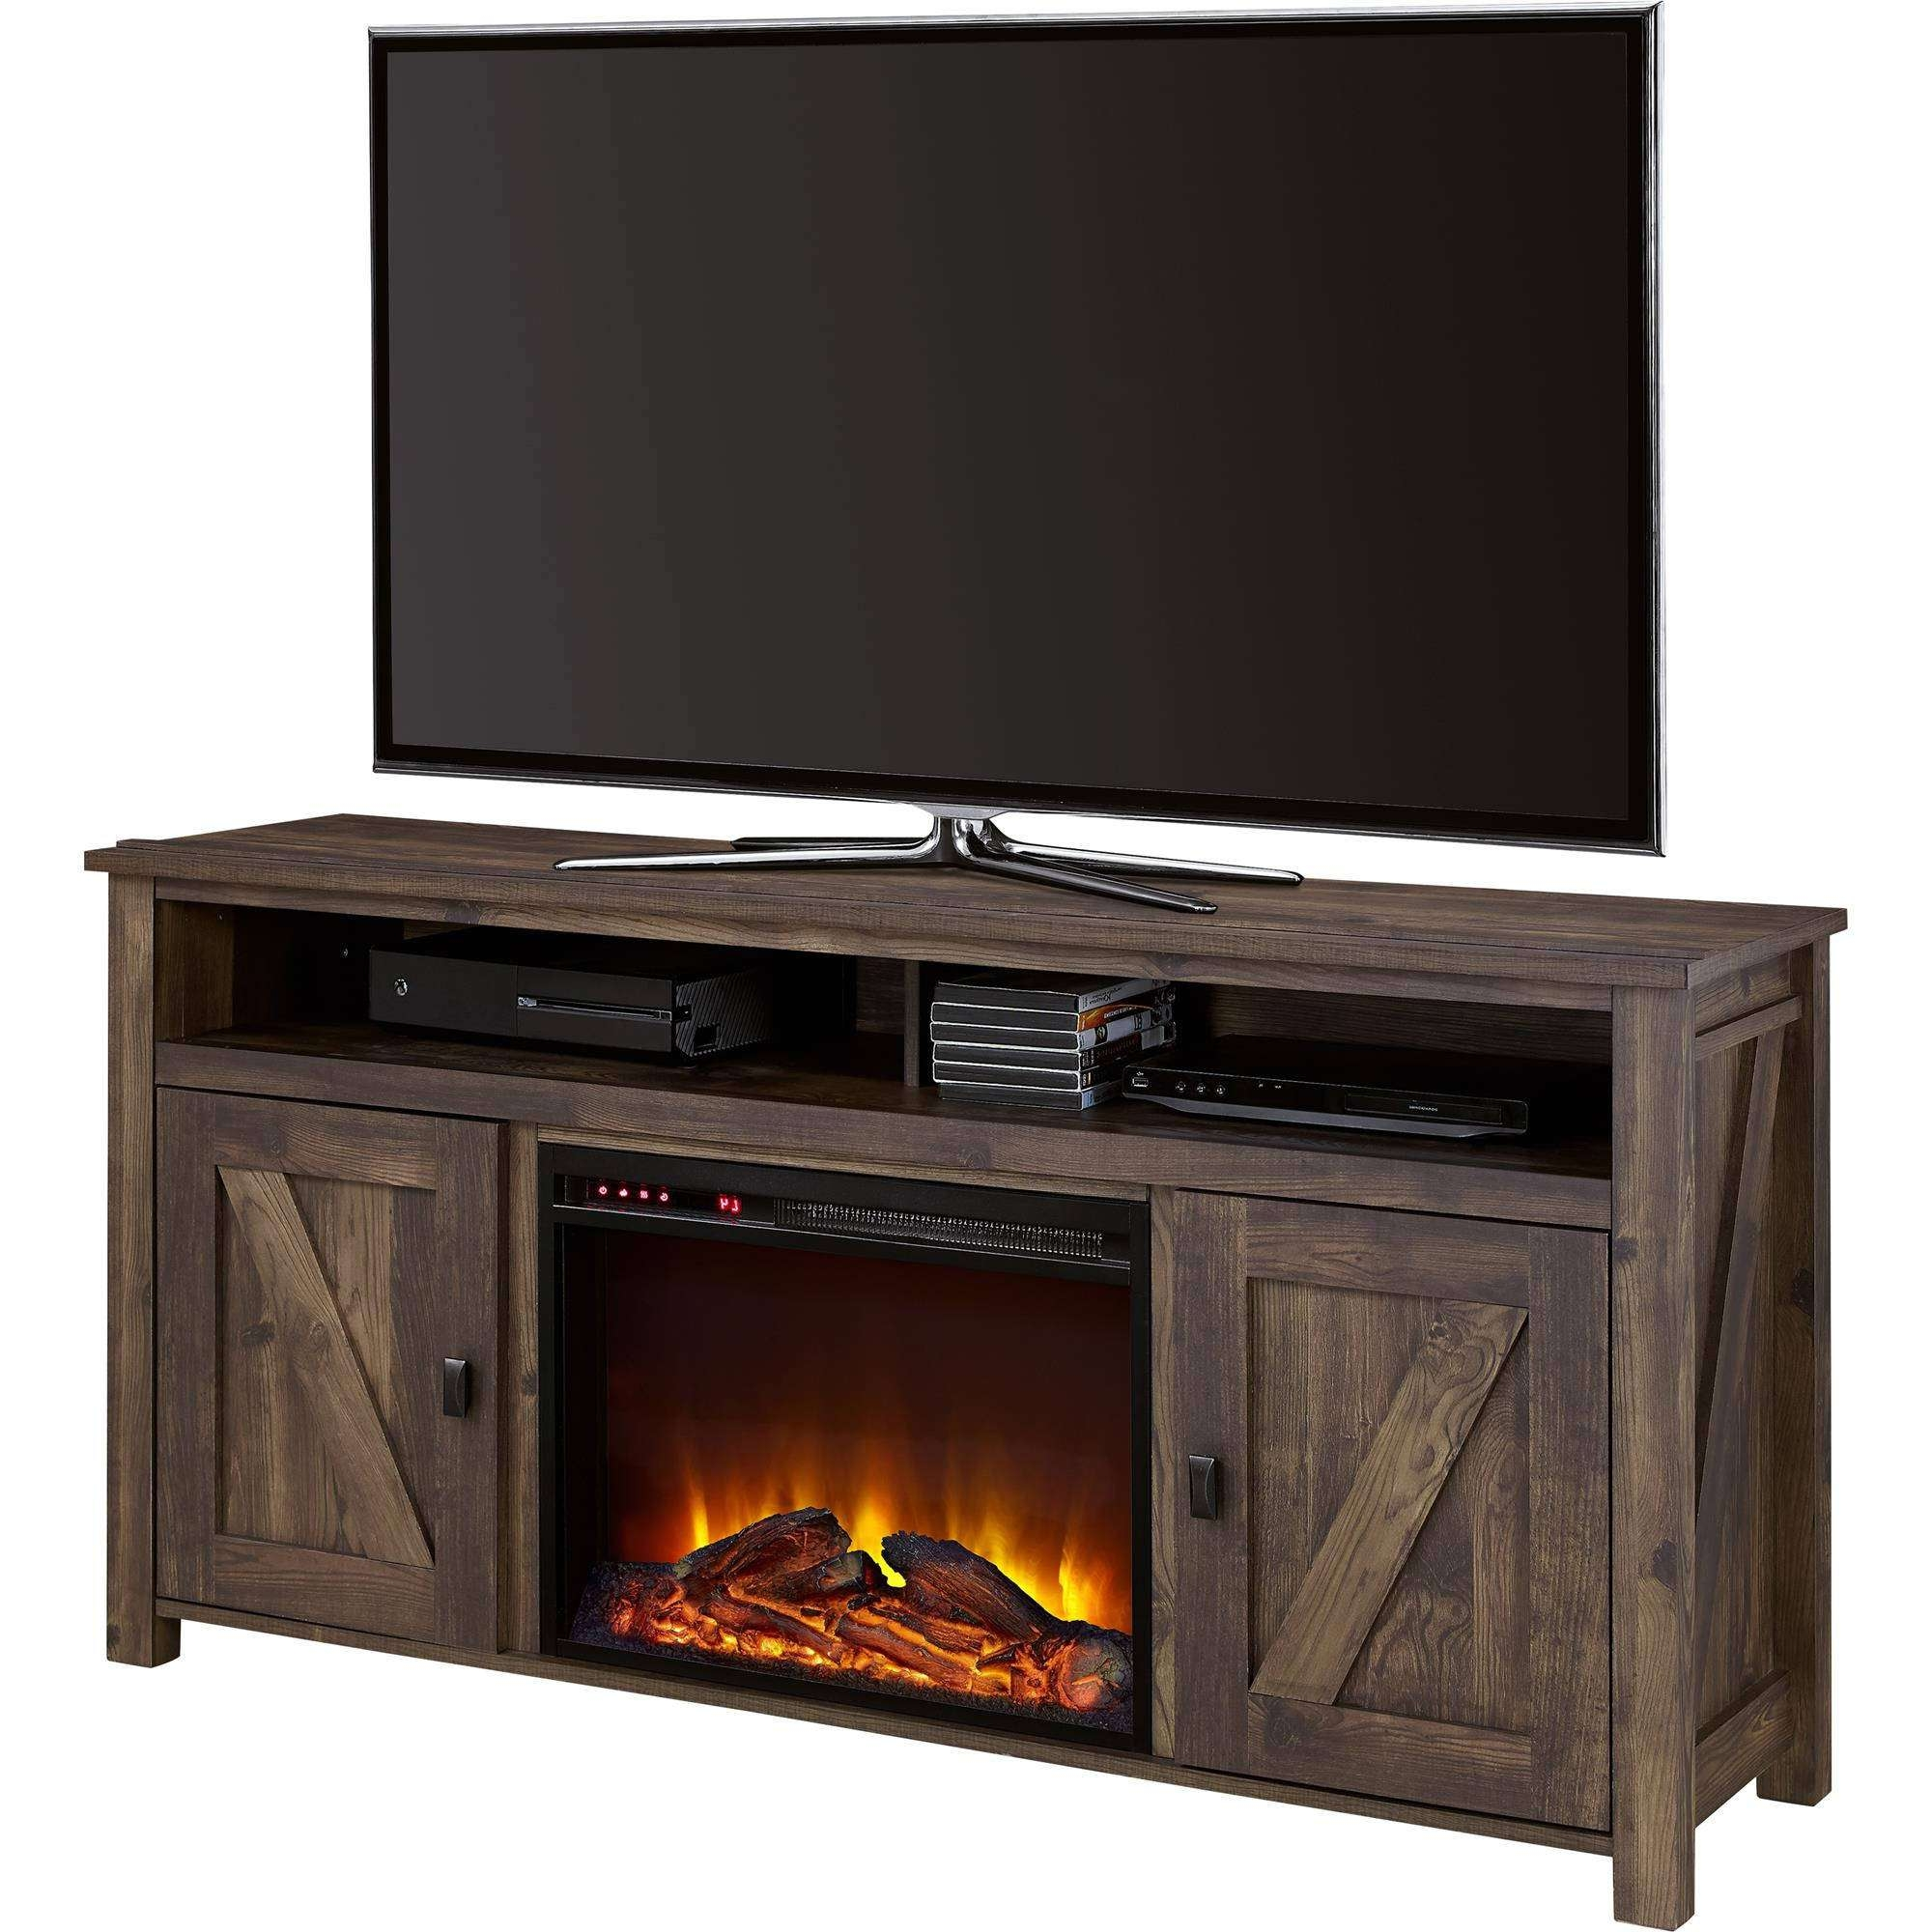 Fireplace Tv Stands – Walmart Within 50 Inch Fireplace Tv Stands (View 8 of 15)